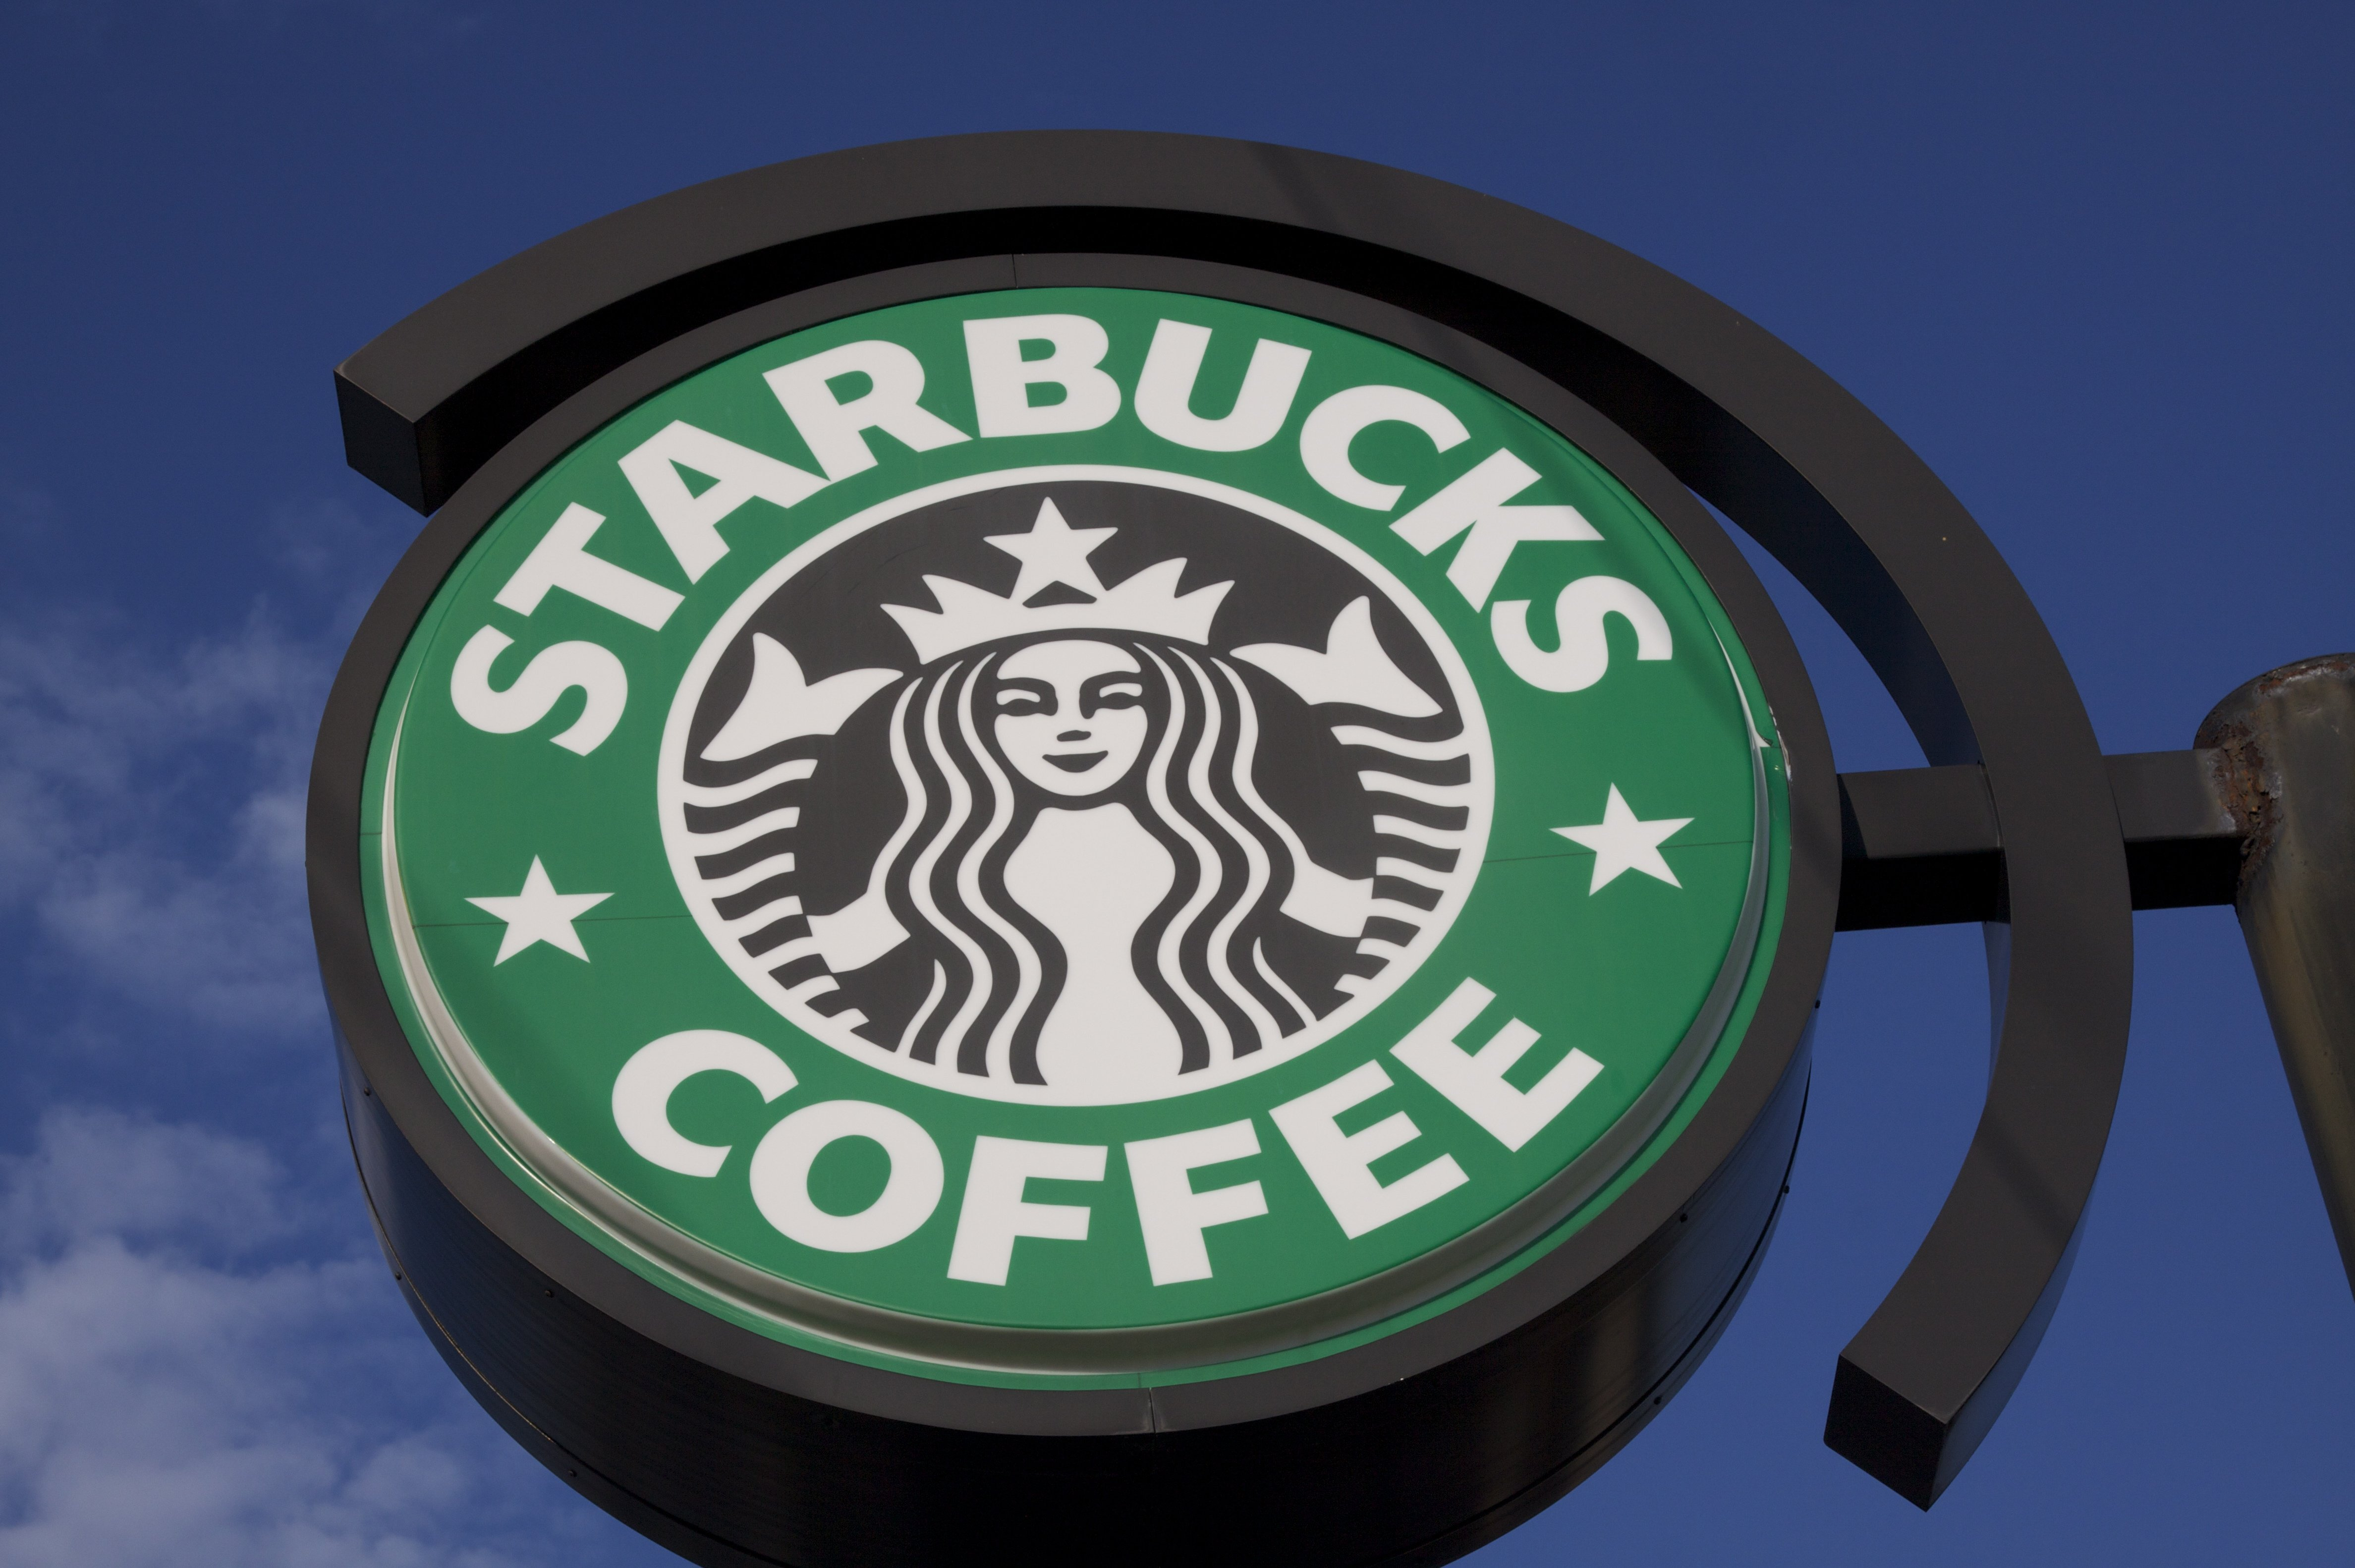 Starbucks says it will close its 8,000 company-owned stores in the US on May 29 to educate employees about racial bias. (Source: Ferre' Dollar/CNN)